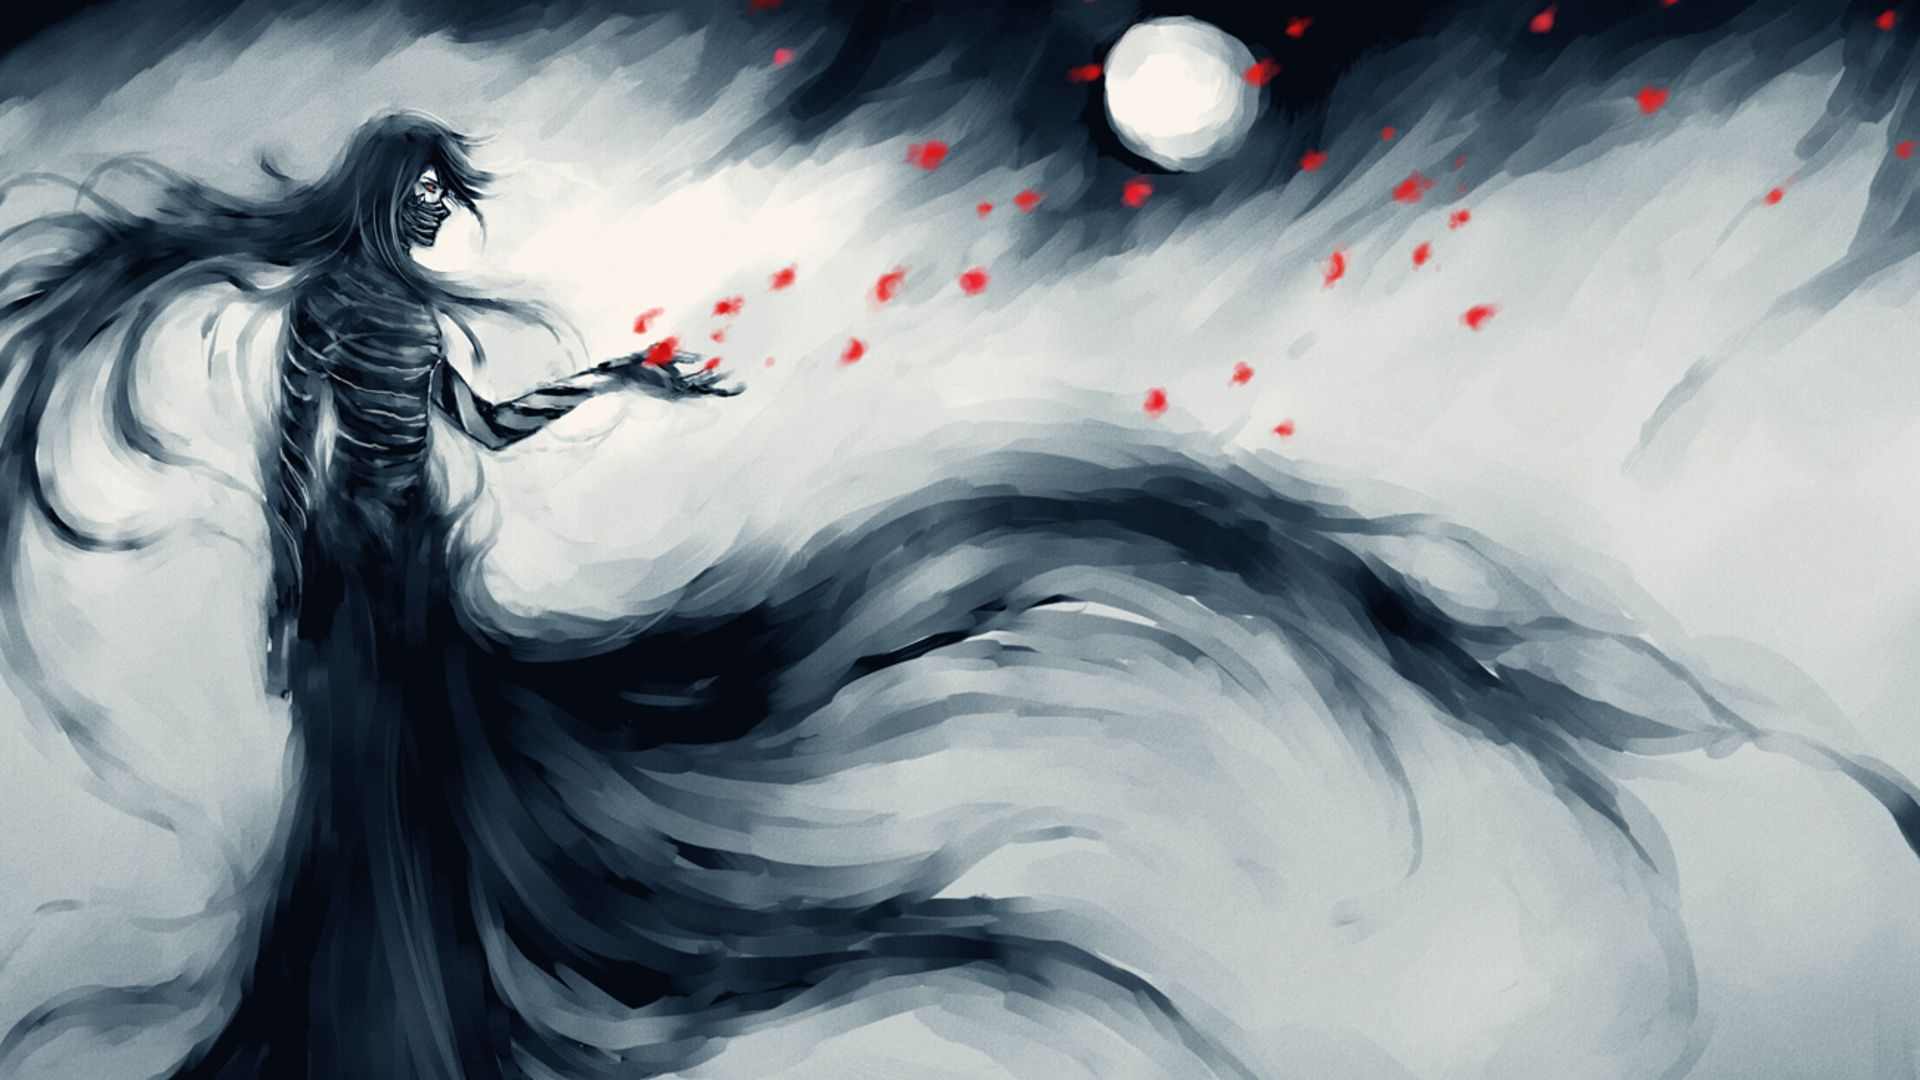 Bleach Anime Wallpapers X